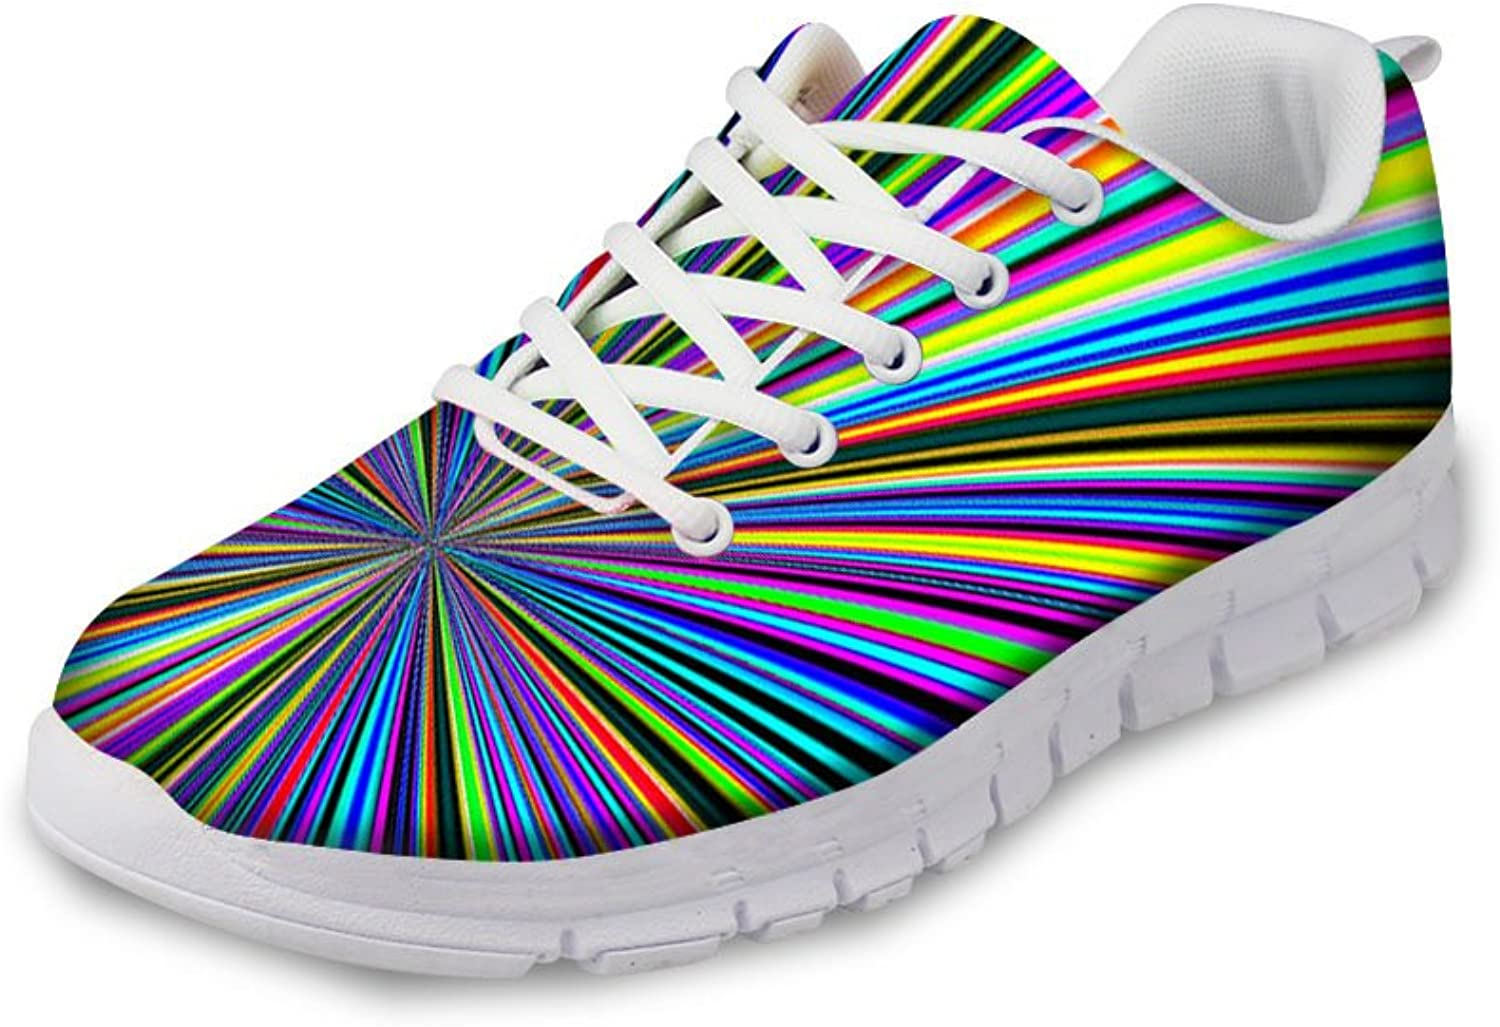 Xinind Stylish New Model Flat Unisex Fashion Sport shoes Sneakers shoes for Men